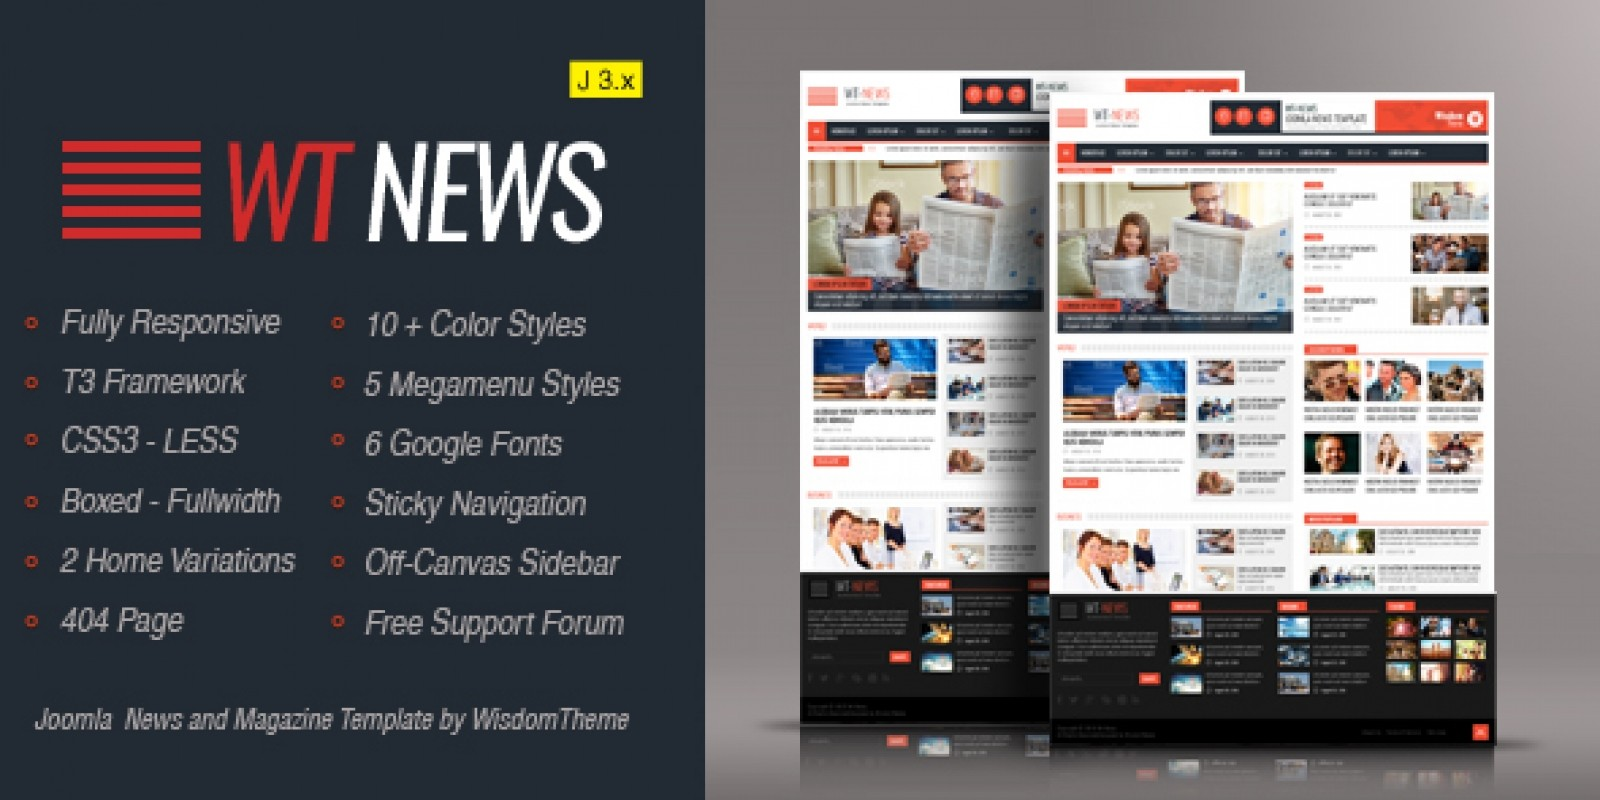 WT News Joomla News And Magazine Template Joomla Miscellaneous - Online magazine template